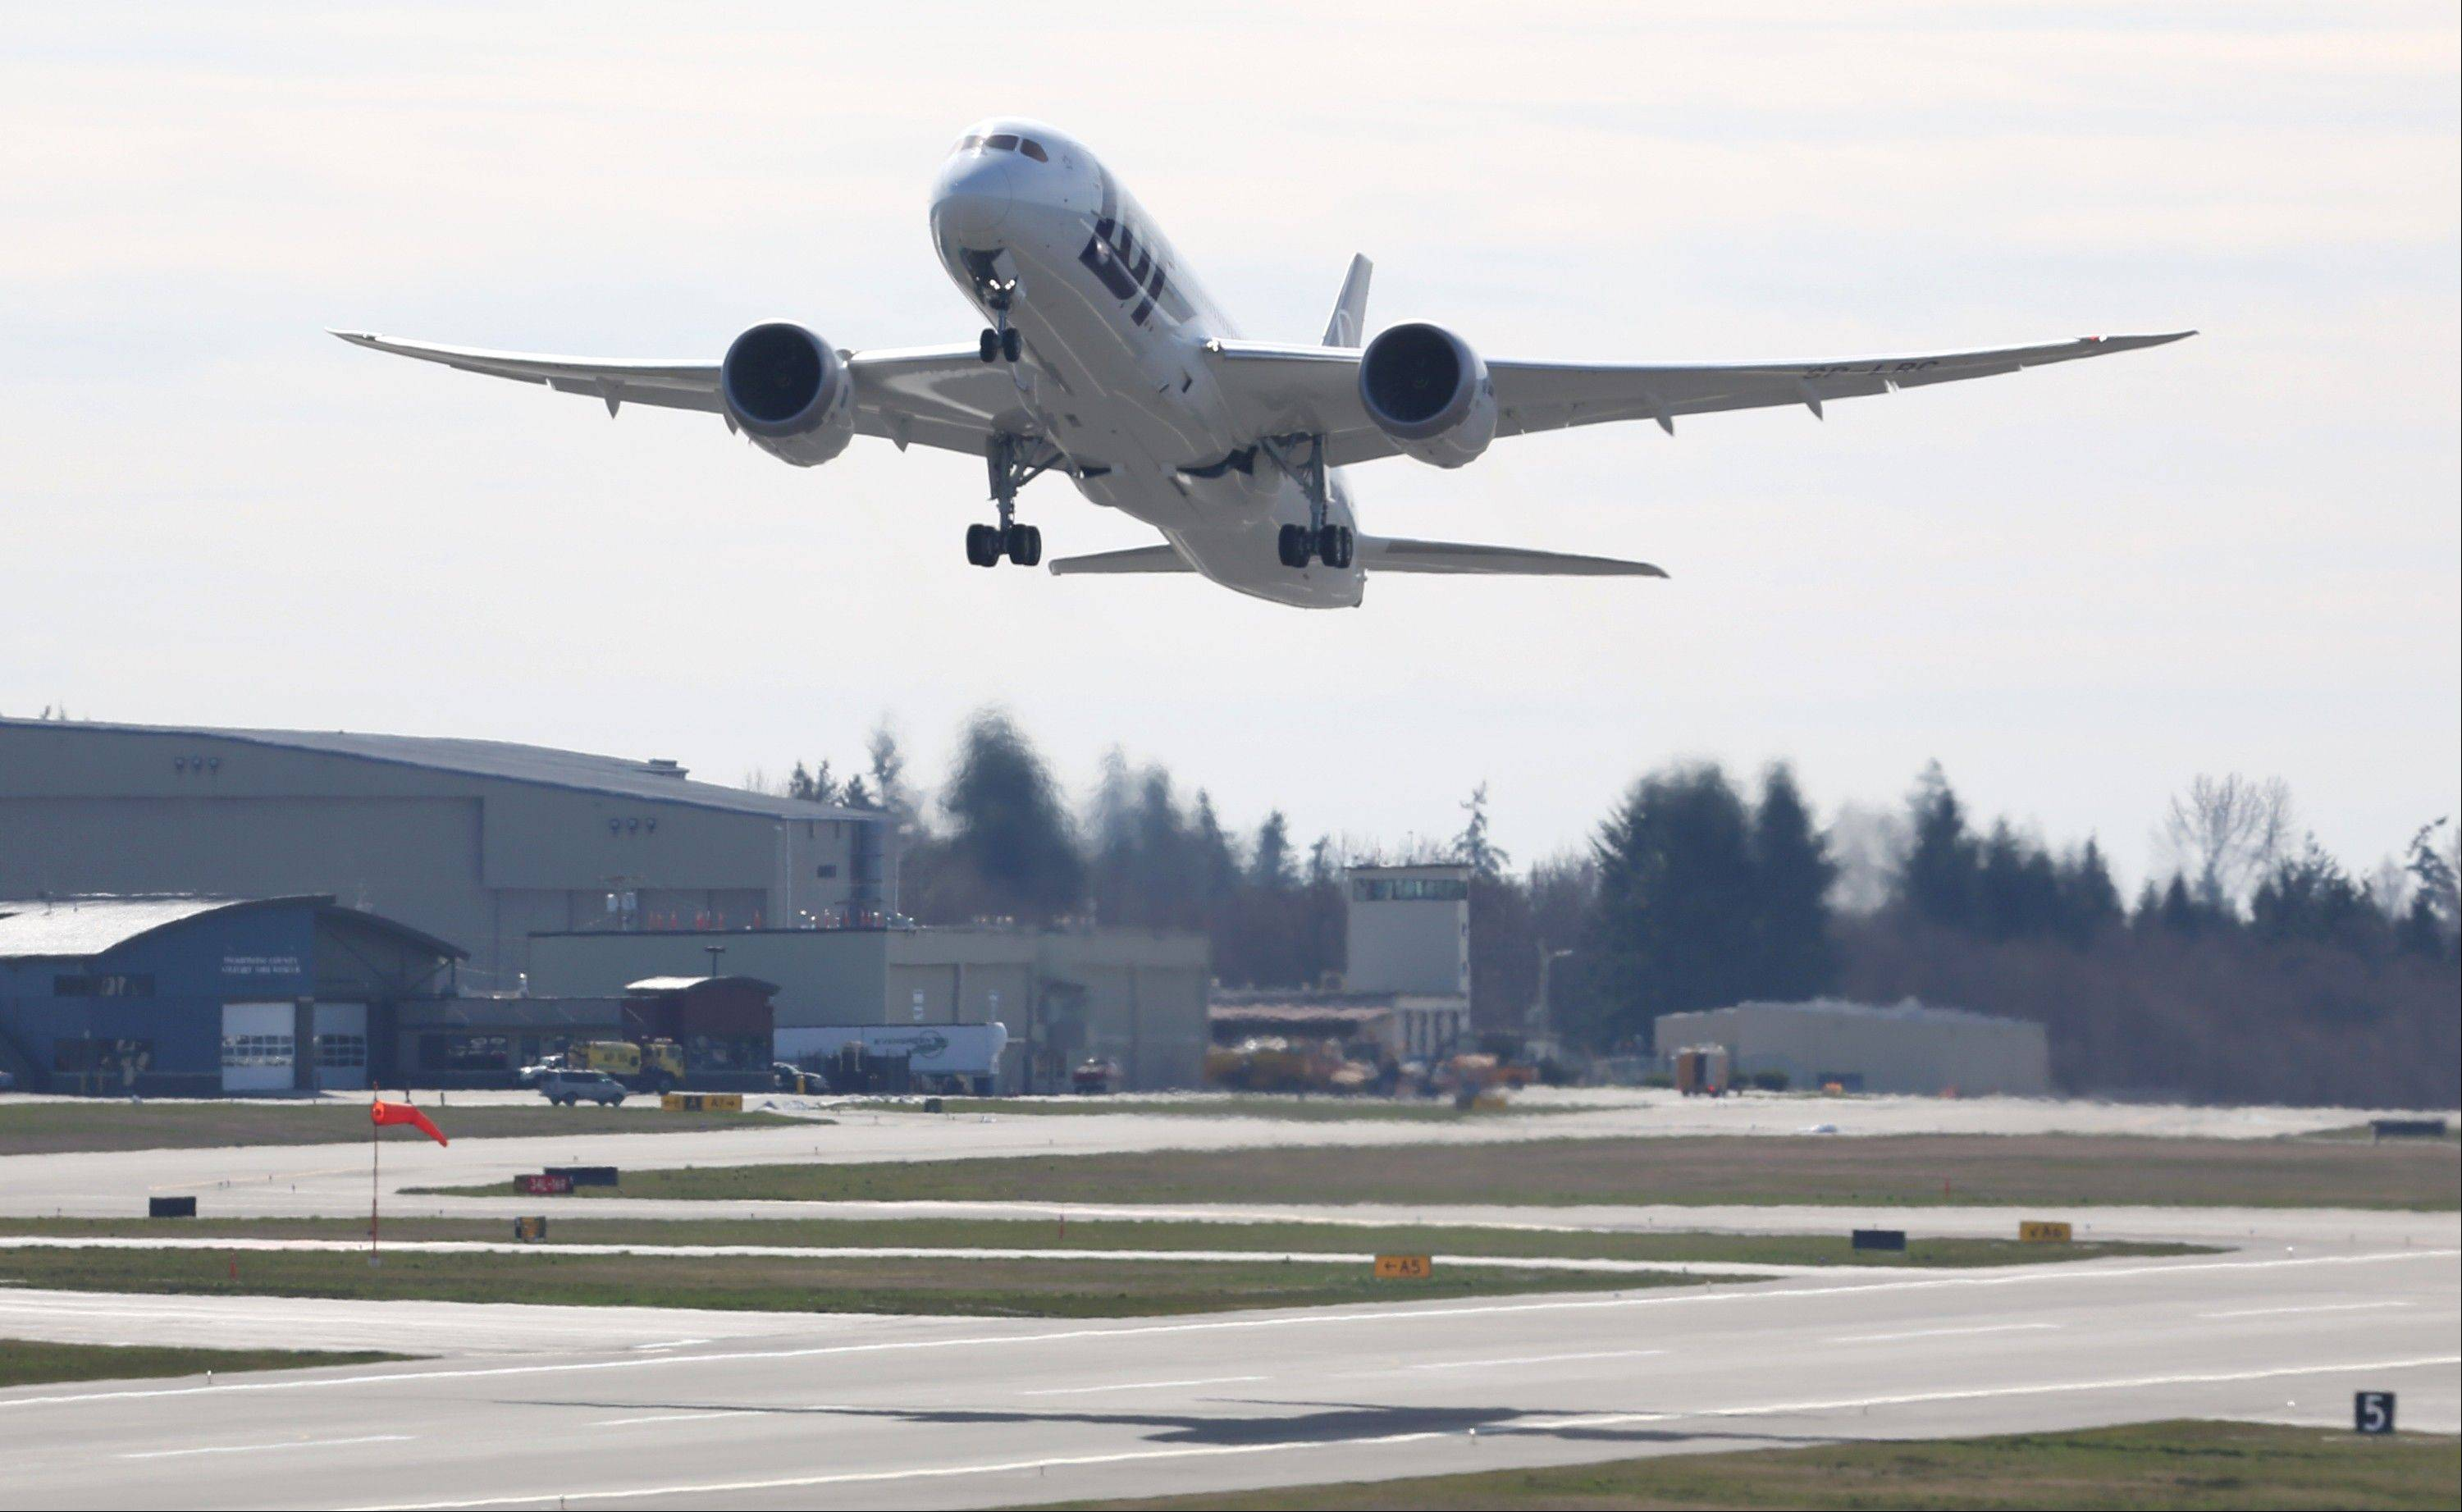 A Boeing 787 lifts off on Monday, at Paine Field in Everett, Washington. This was the first test flight of a 787 since the fleet was grounded because the danger of a fire with the lithium-Ion battery in the plane.